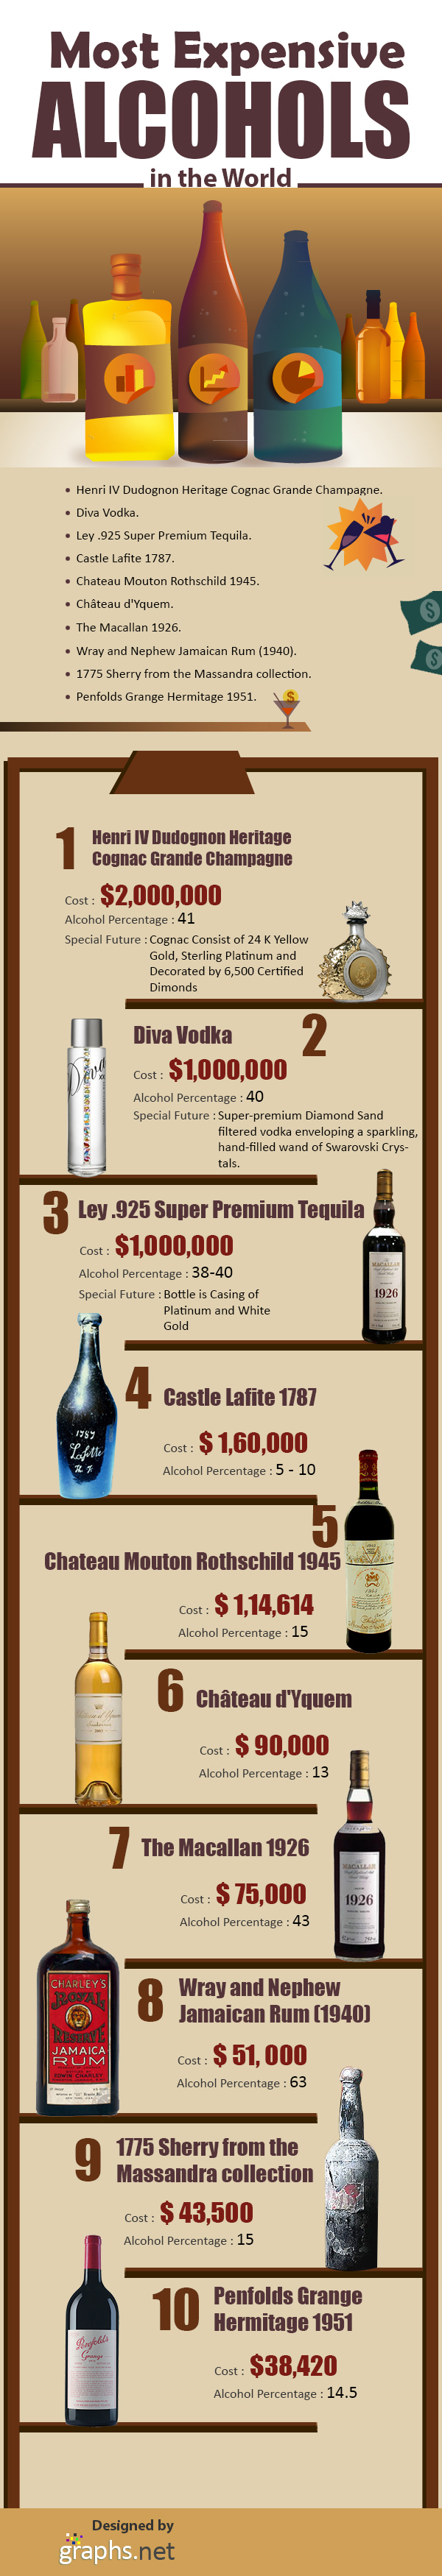 Most Expensive Alcohols in the World